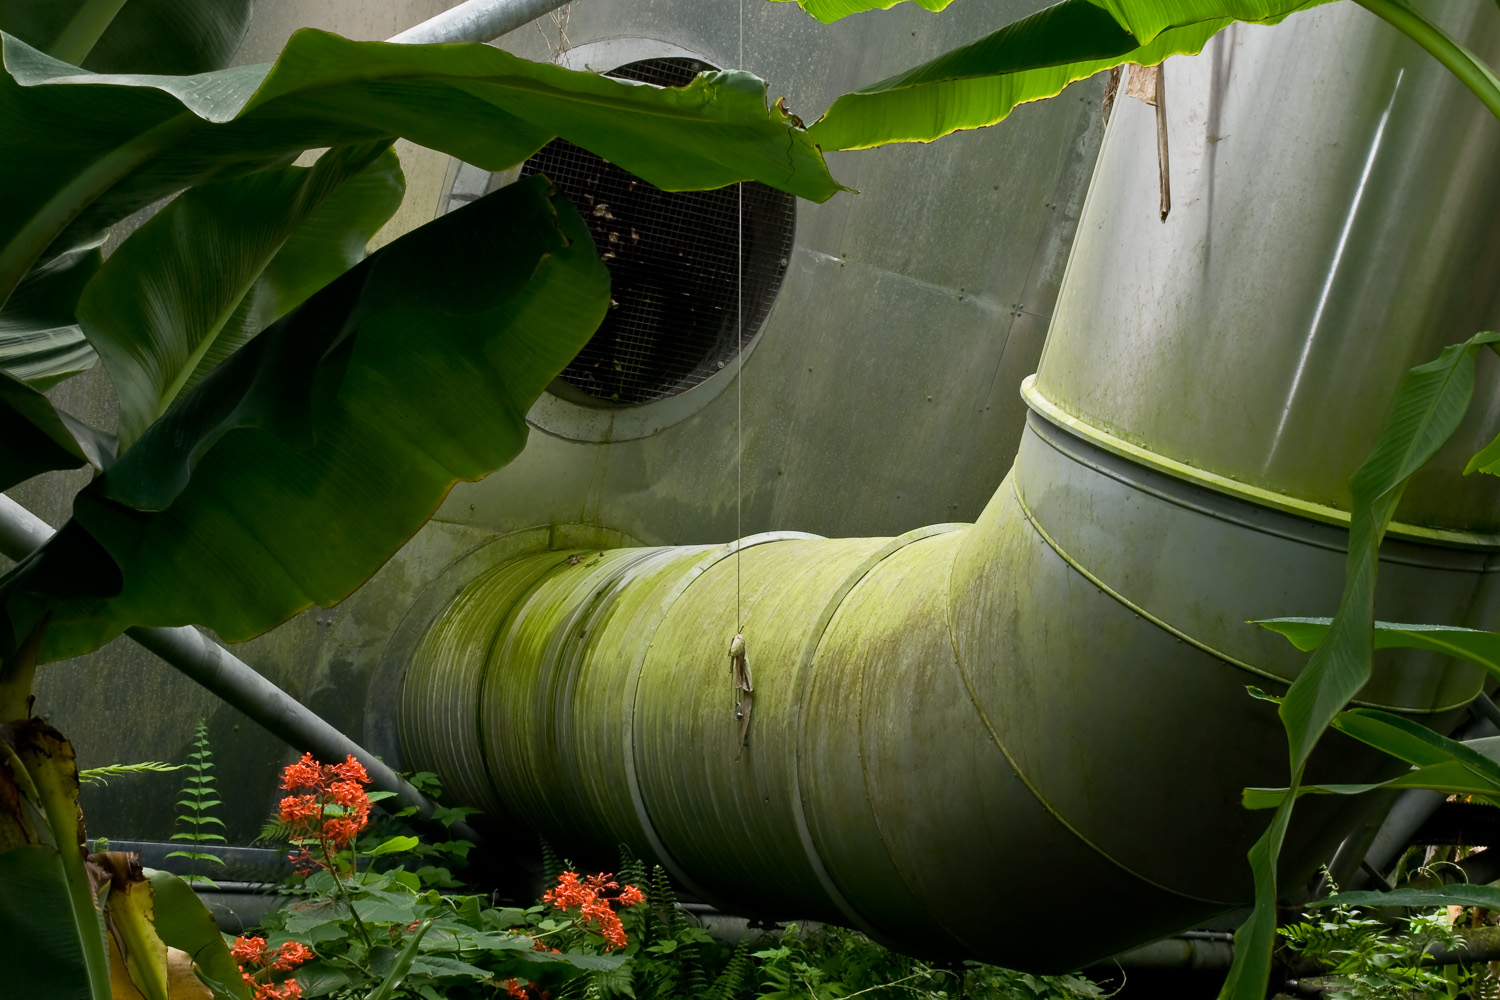 Green Ductwork, Eden Project from  Terraria Gigantica: the World Under Glass